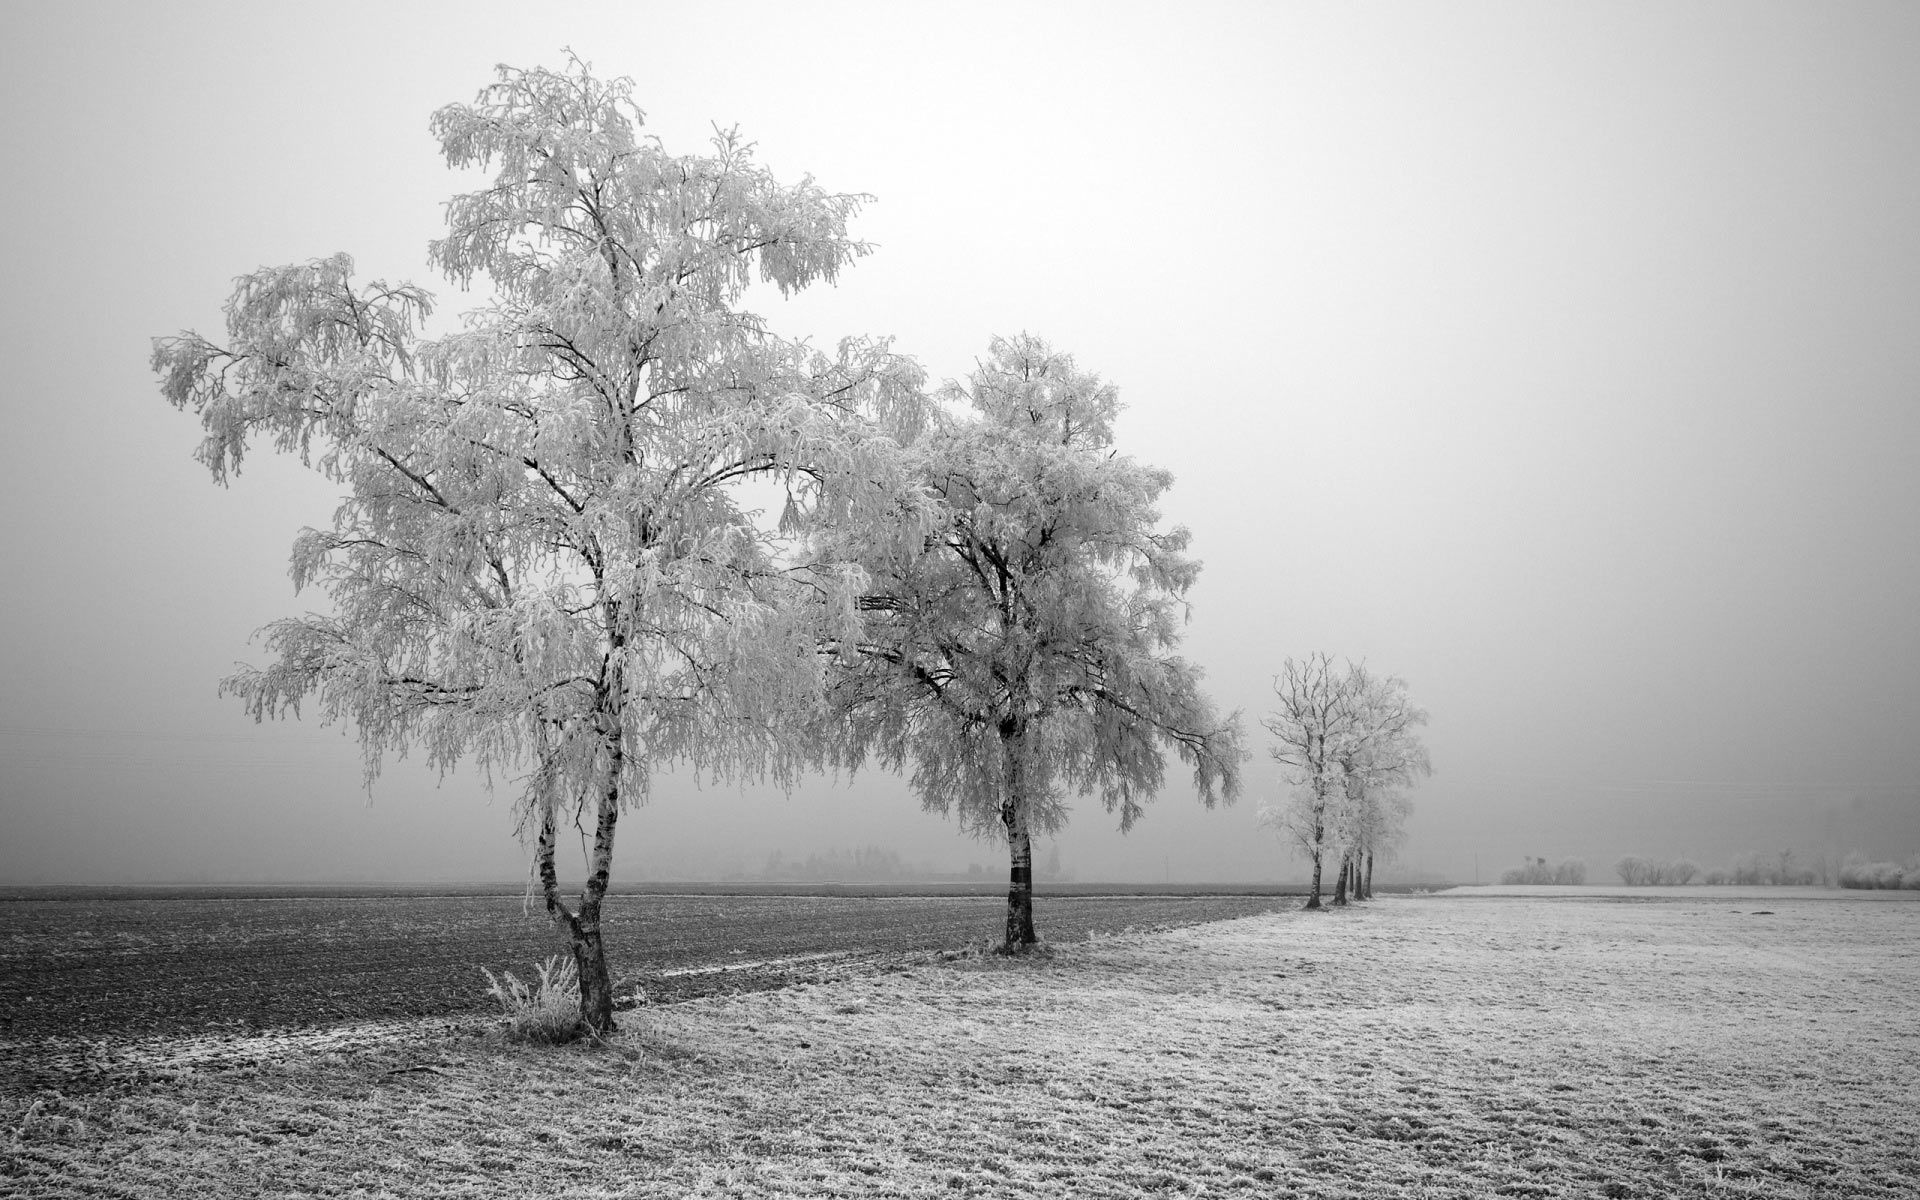 High Resolution Black And White Images Black And White First Frost For High Resolution Hd Wallpaper Winter Landscape Winter Wallpaper Winter Trees